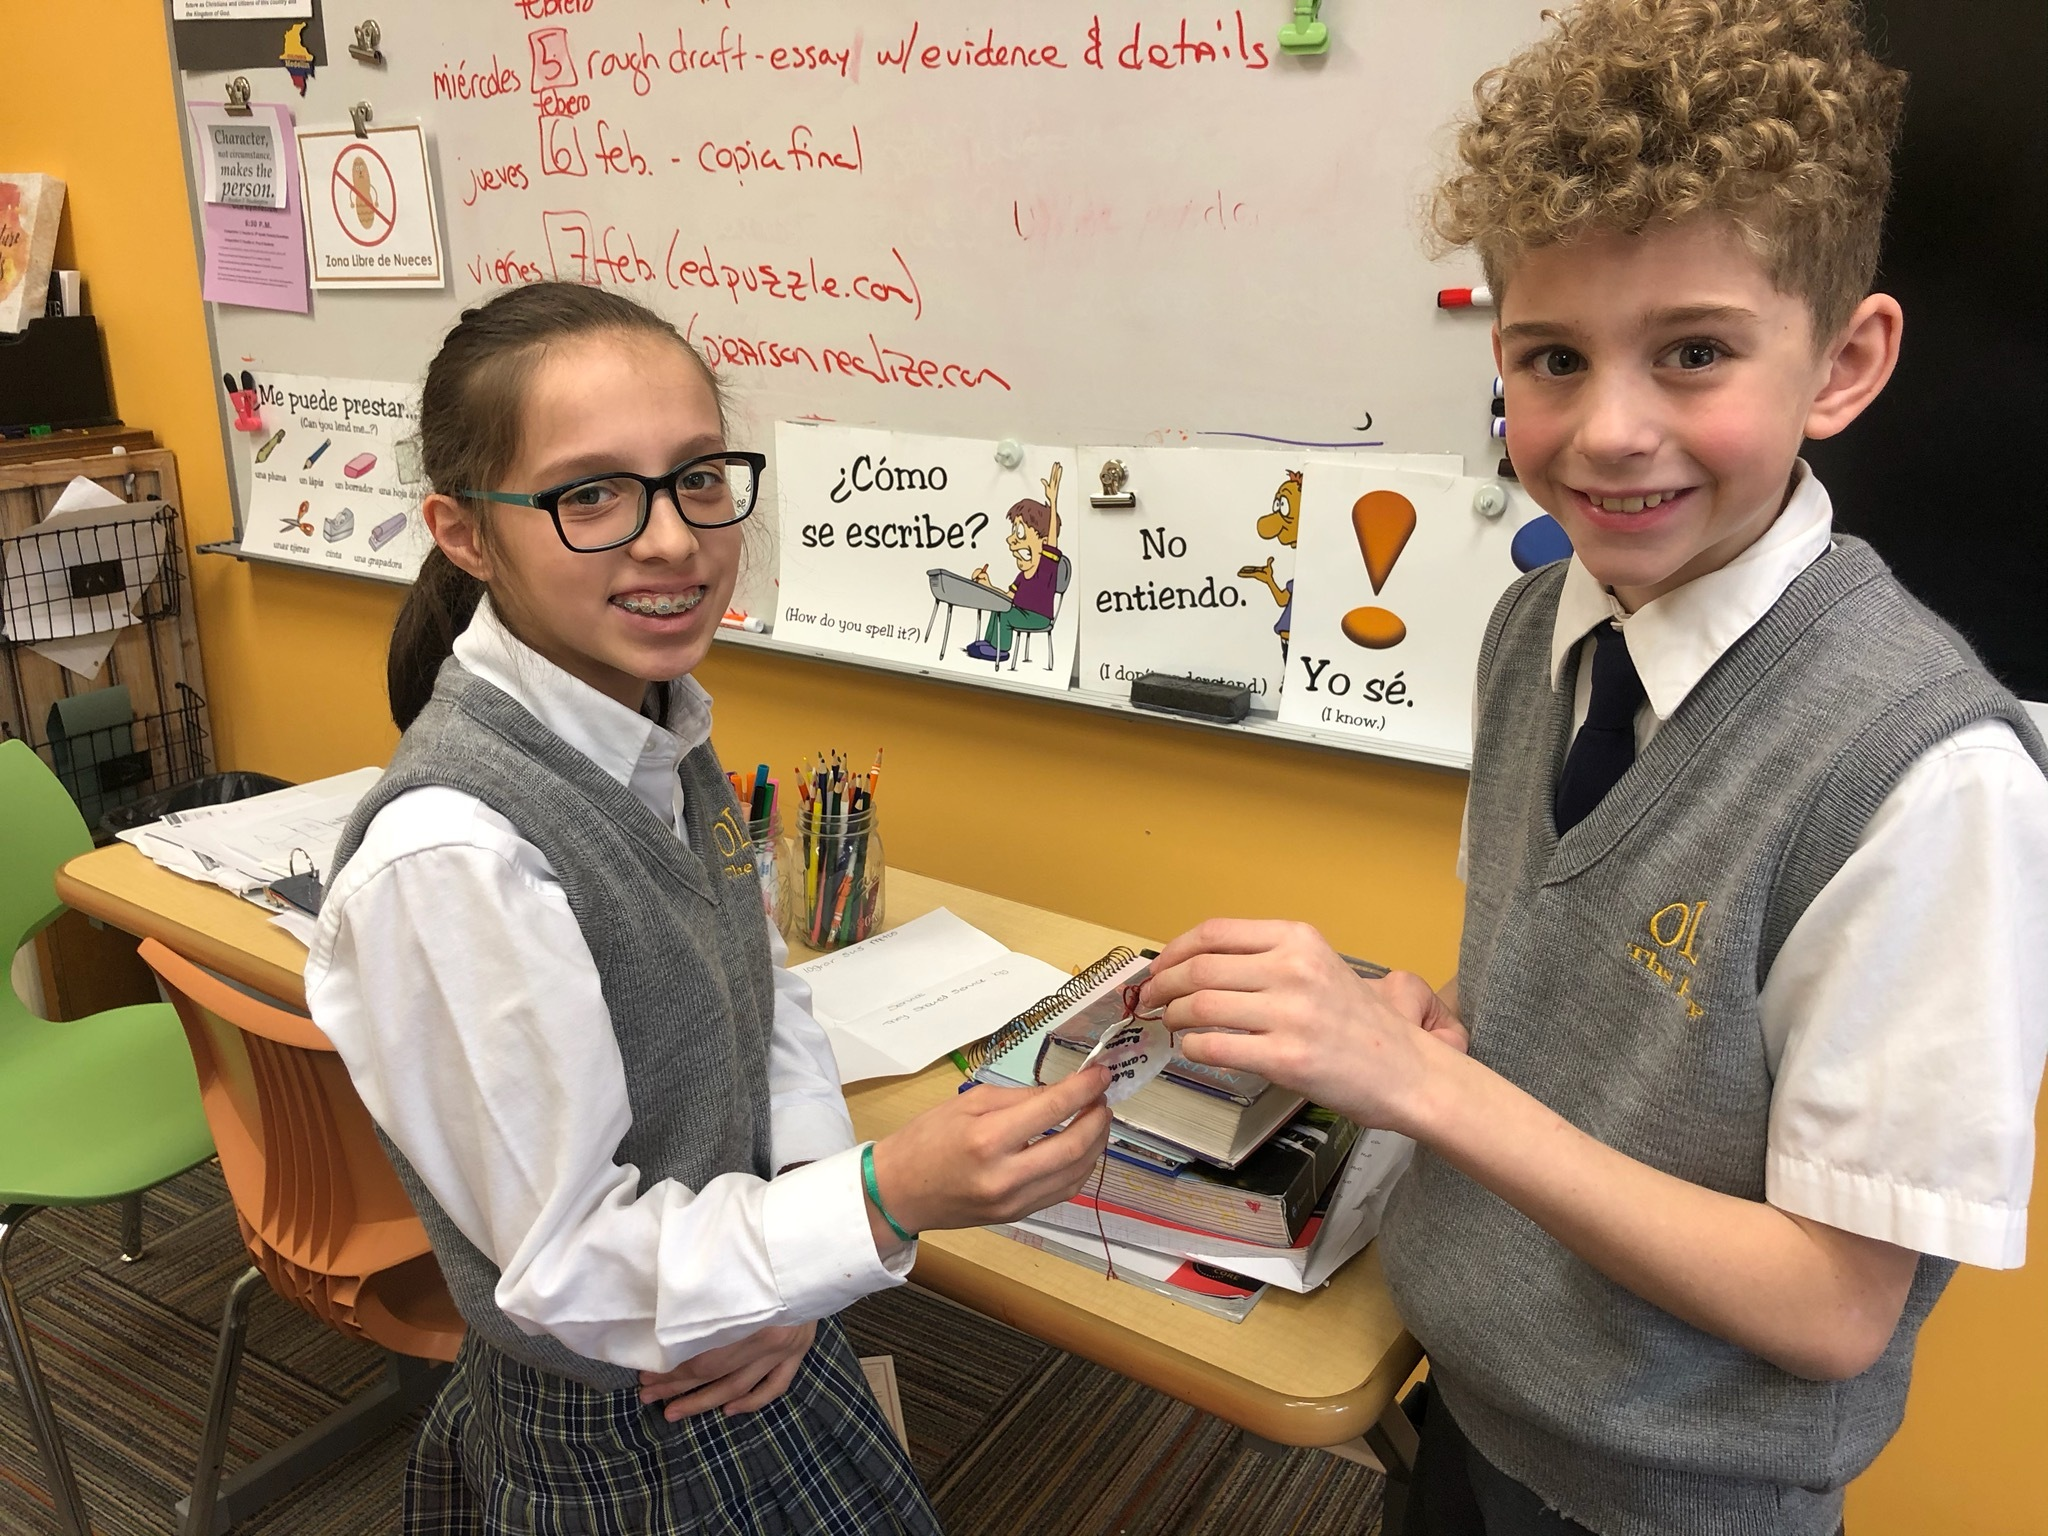 Our Lady of the Hamptons School sixth-graders Bianca Alvarado and Brian Spellman helped to prepare the identification shells for the pilgrimage project. The mock pilgramage is the culmination of an integrated Spanish, religion, art, history, and geography project.